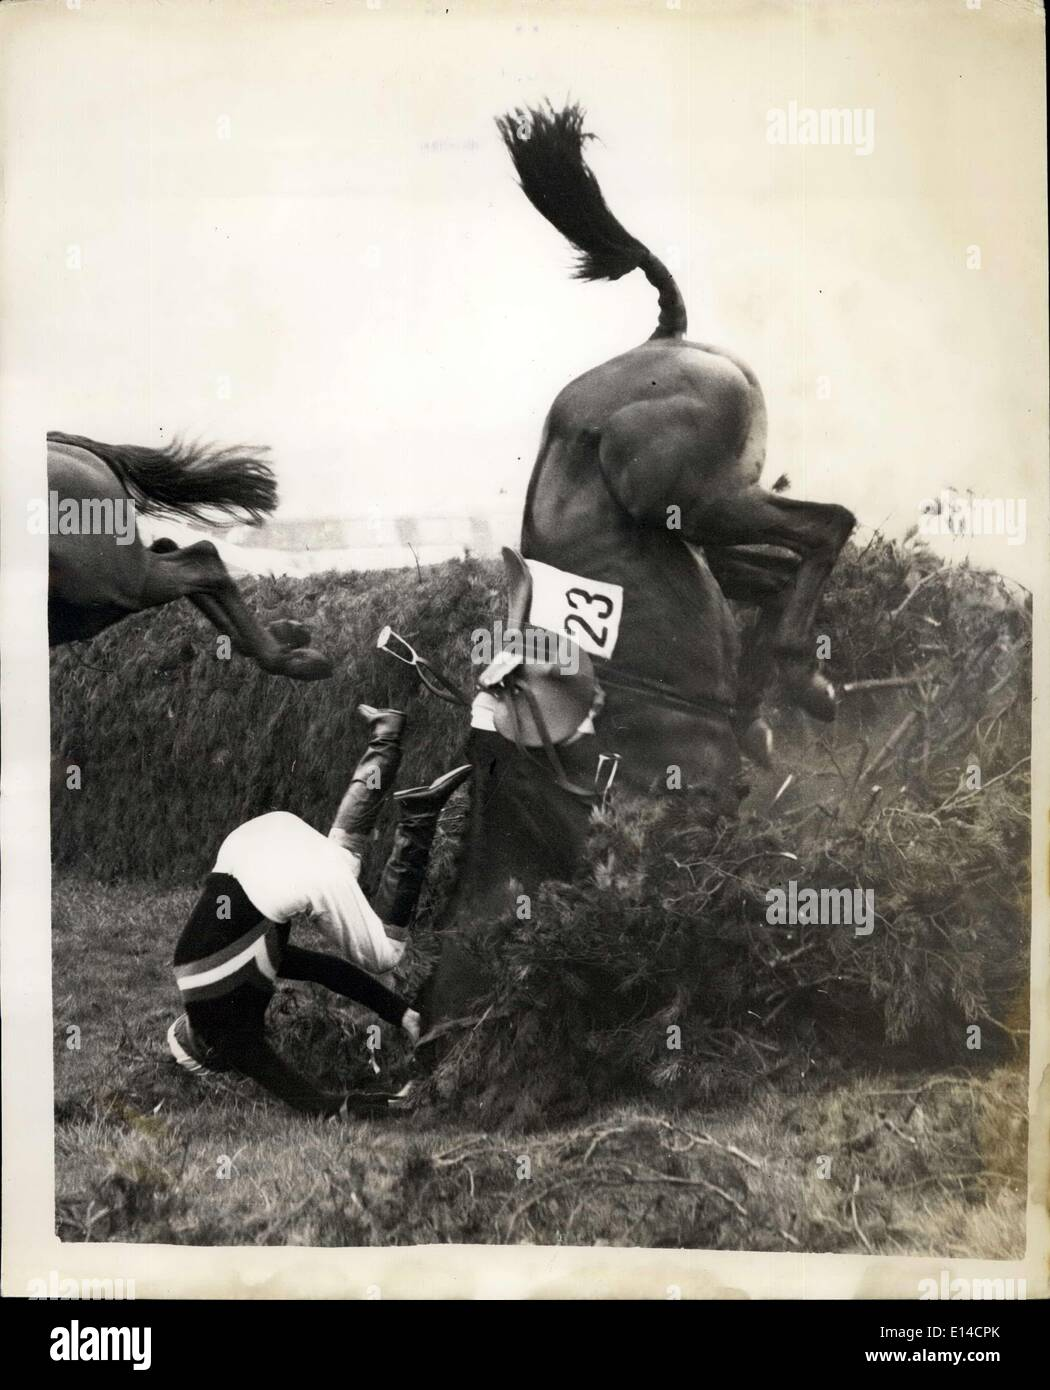 Apr. 17, 2012 - China Clipper ,ridden by Major W.D. Giloson, the owner , comes to Grief at the last Fence. - Stock Image